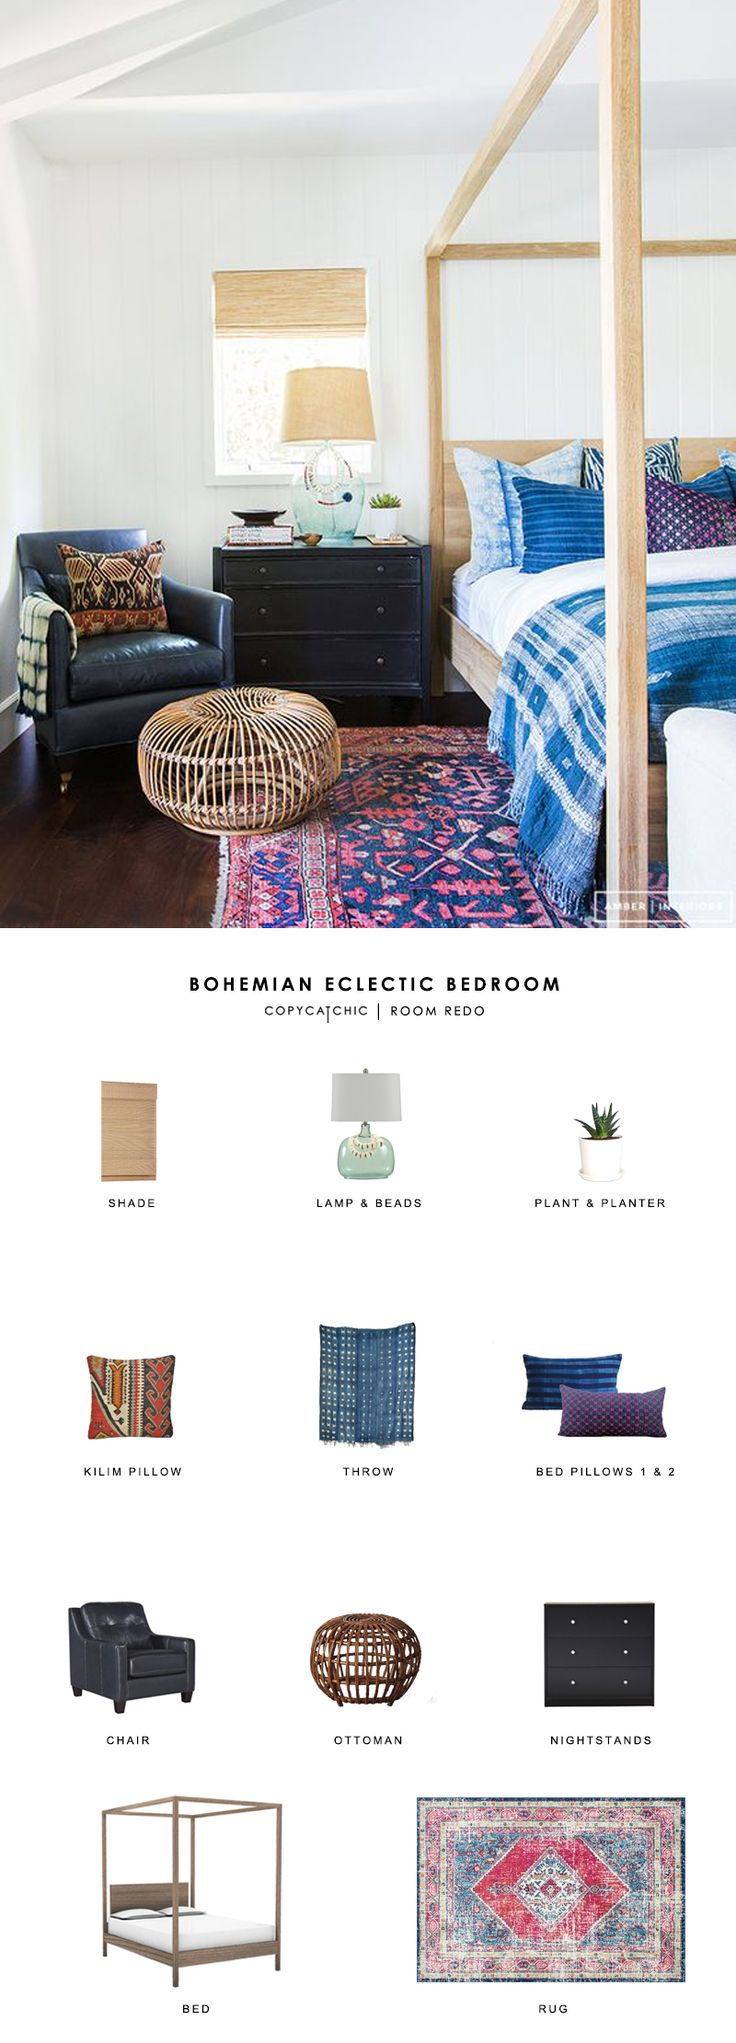 Copy Cat Chic Room Redo | Bohemian Eclectic Bedroom